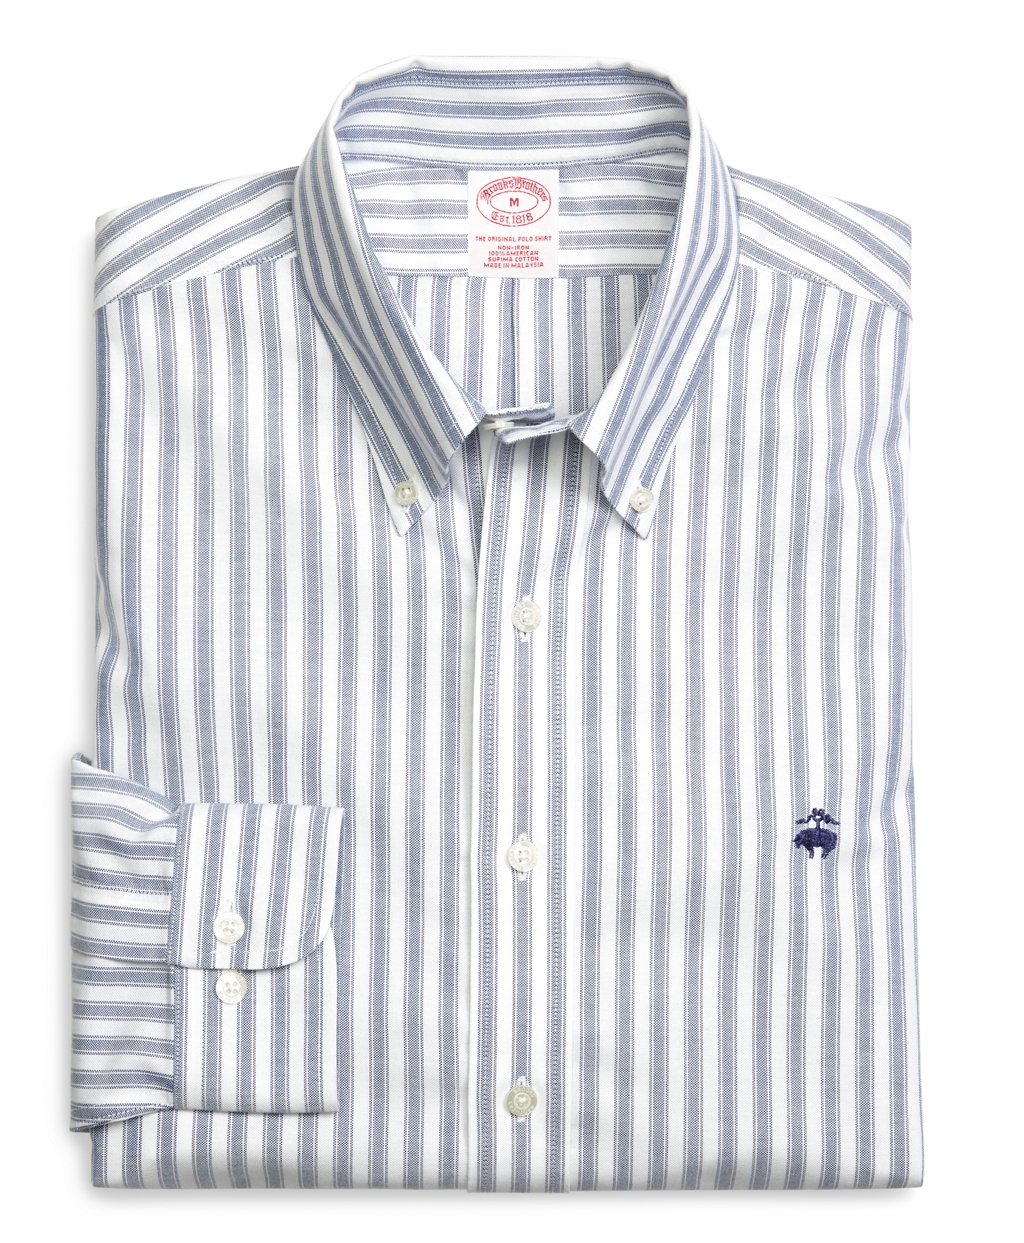 Brooks brothers supima cotton non iron slim fit for Brooks brothers non iron shirts review